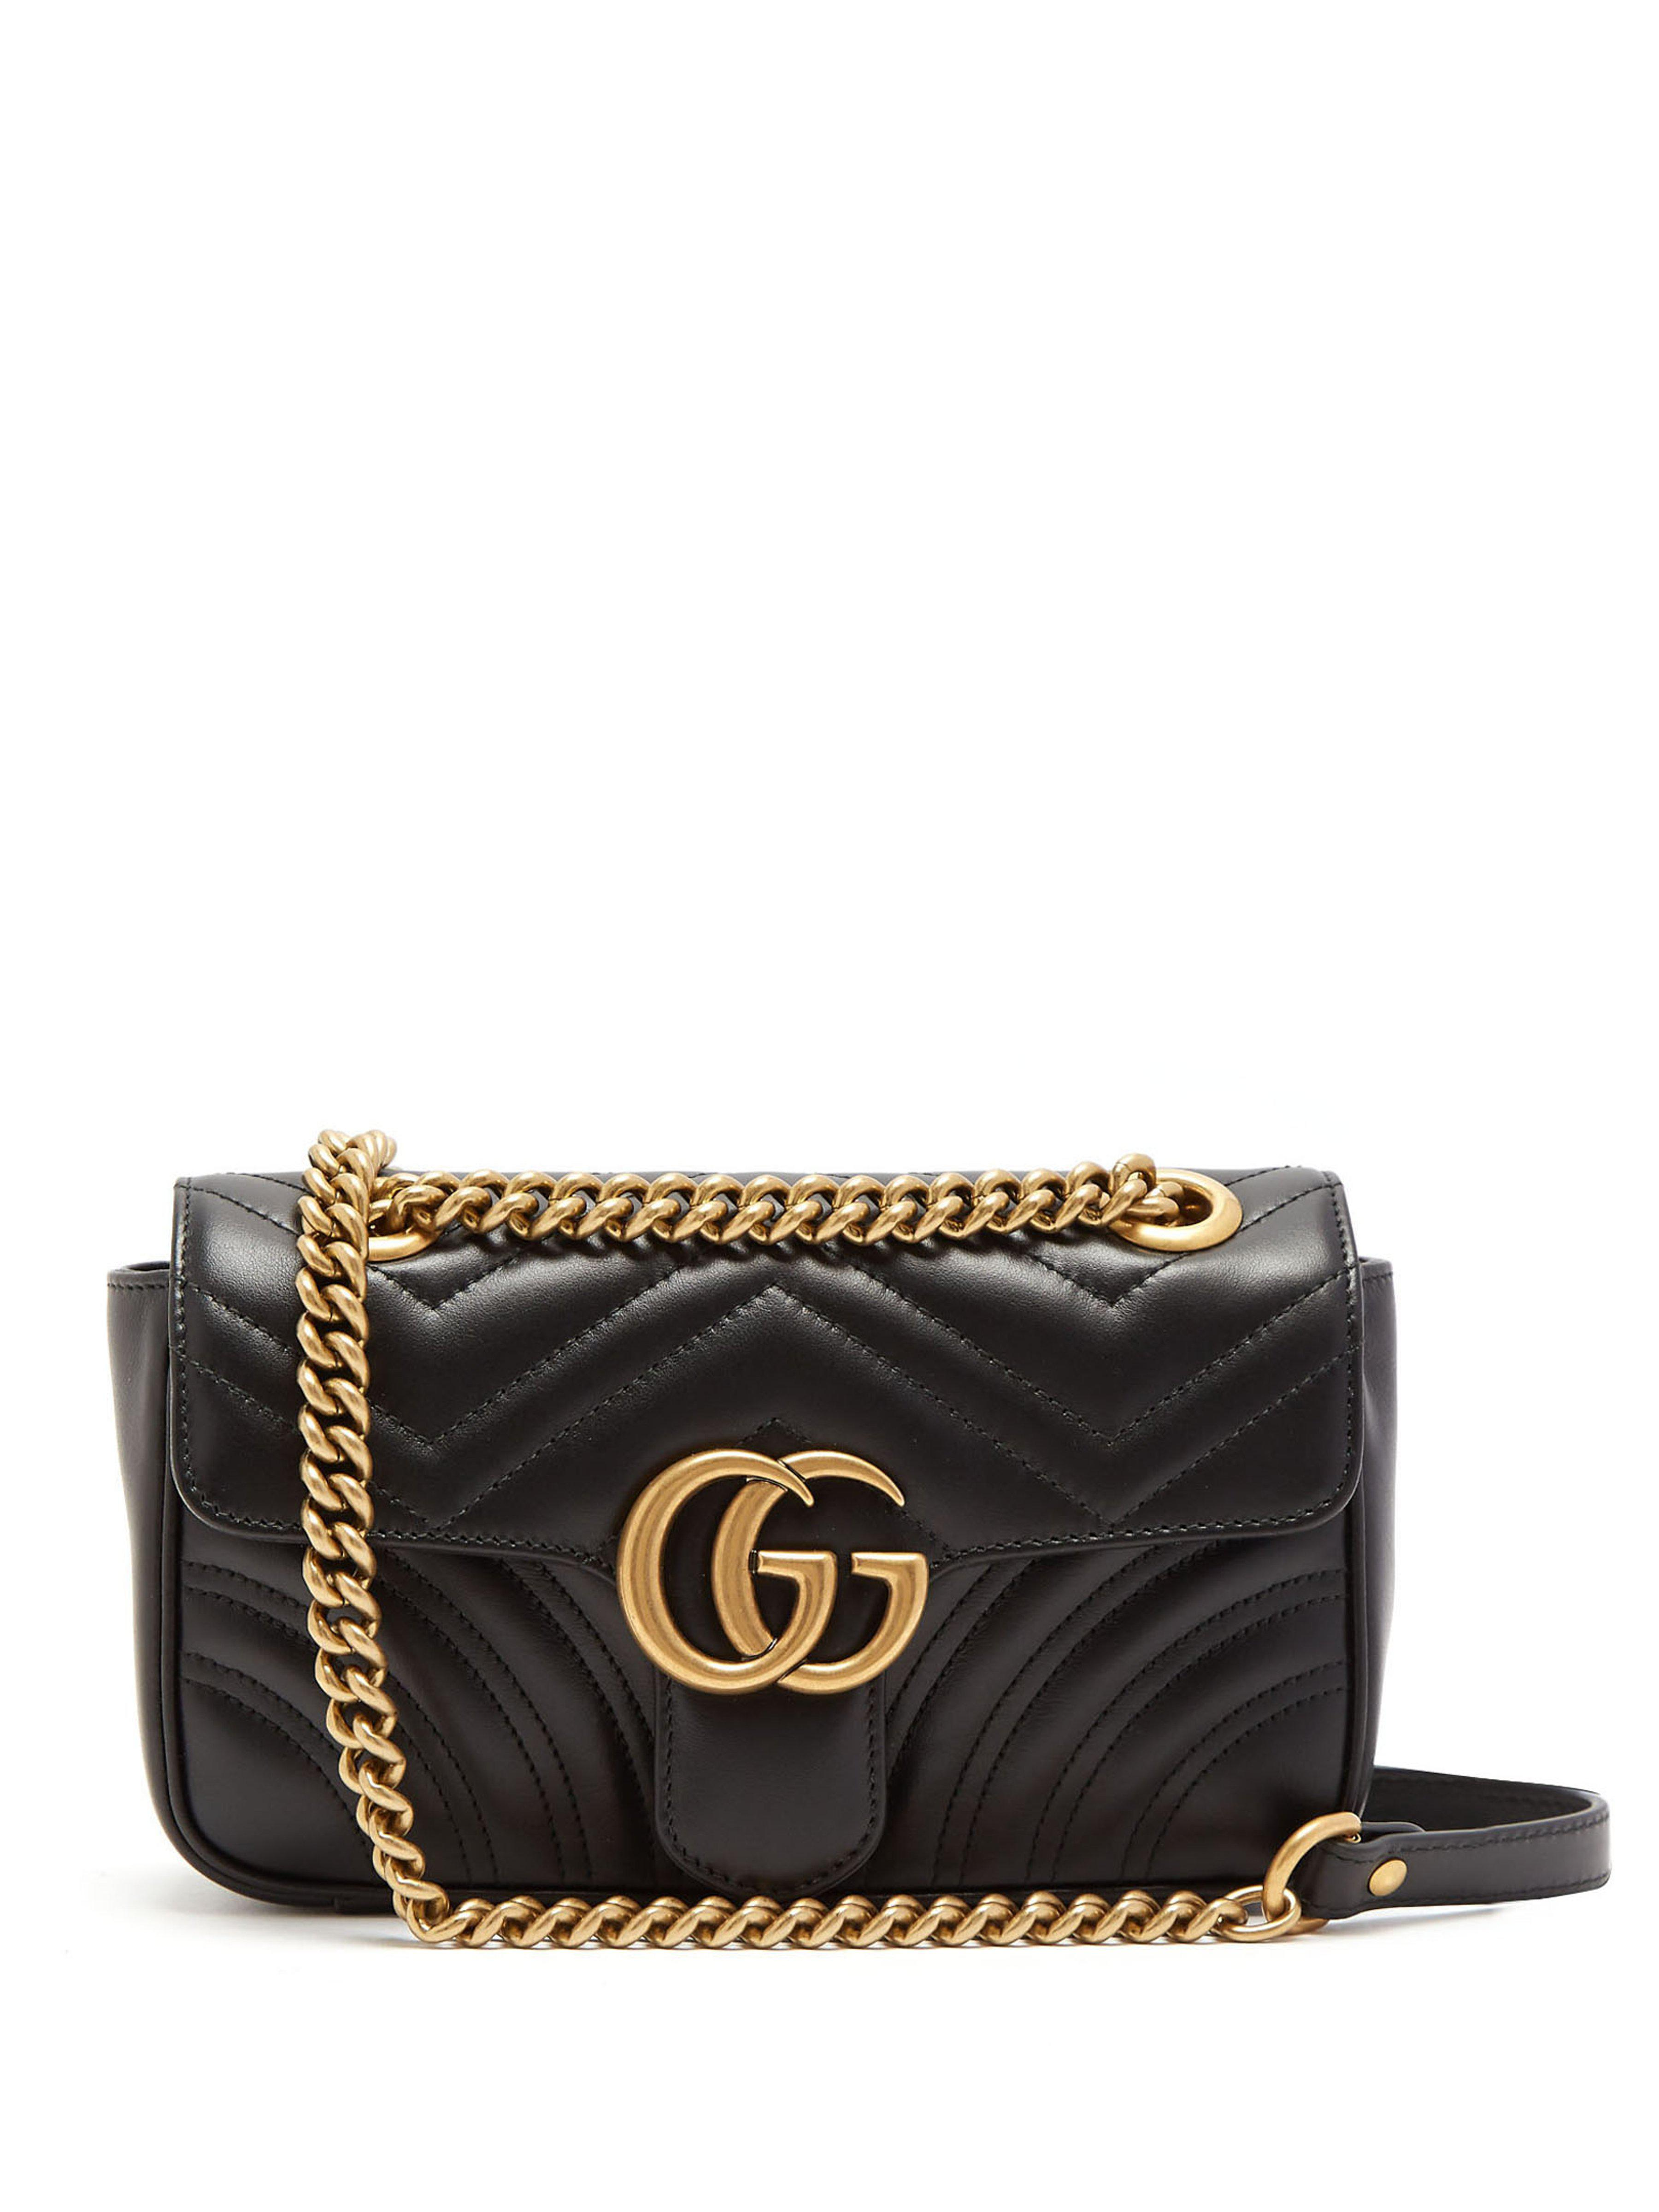 Gucci Small GG Marmont Matelasse Shoulder Bag in Black - Save 34% - Lyst f31b5862f05a4